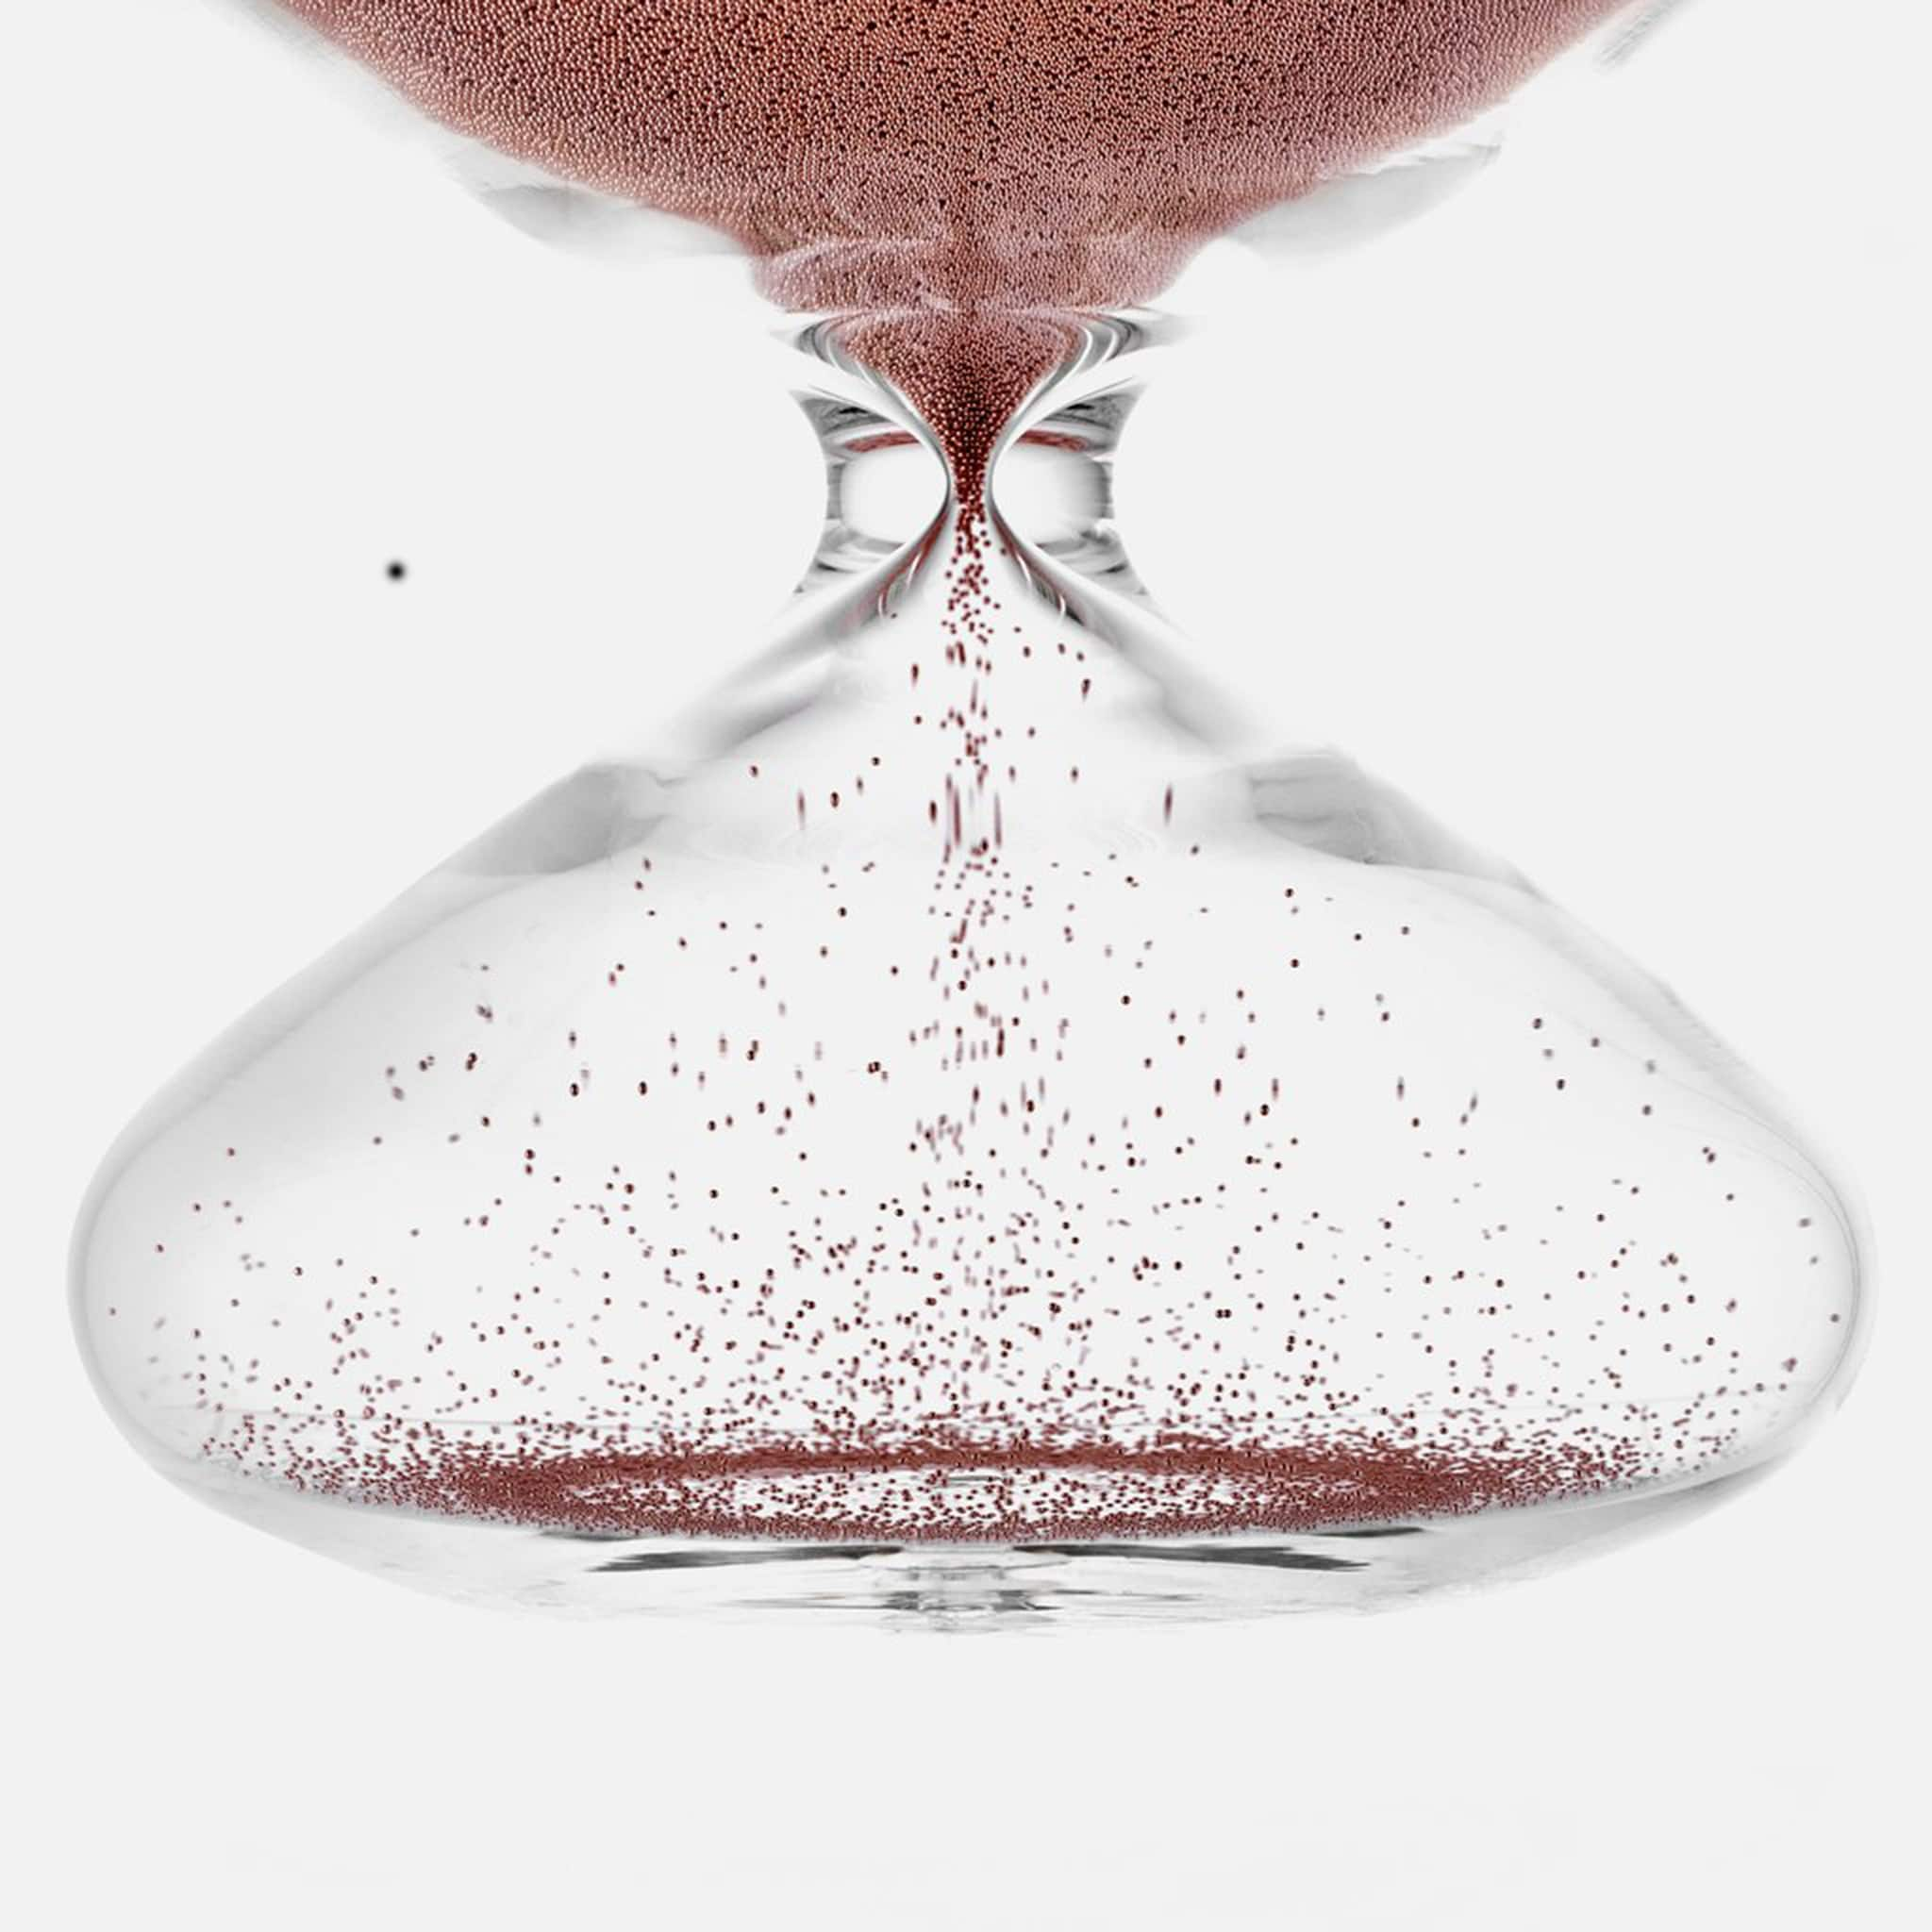 Hourglass Marc Newson